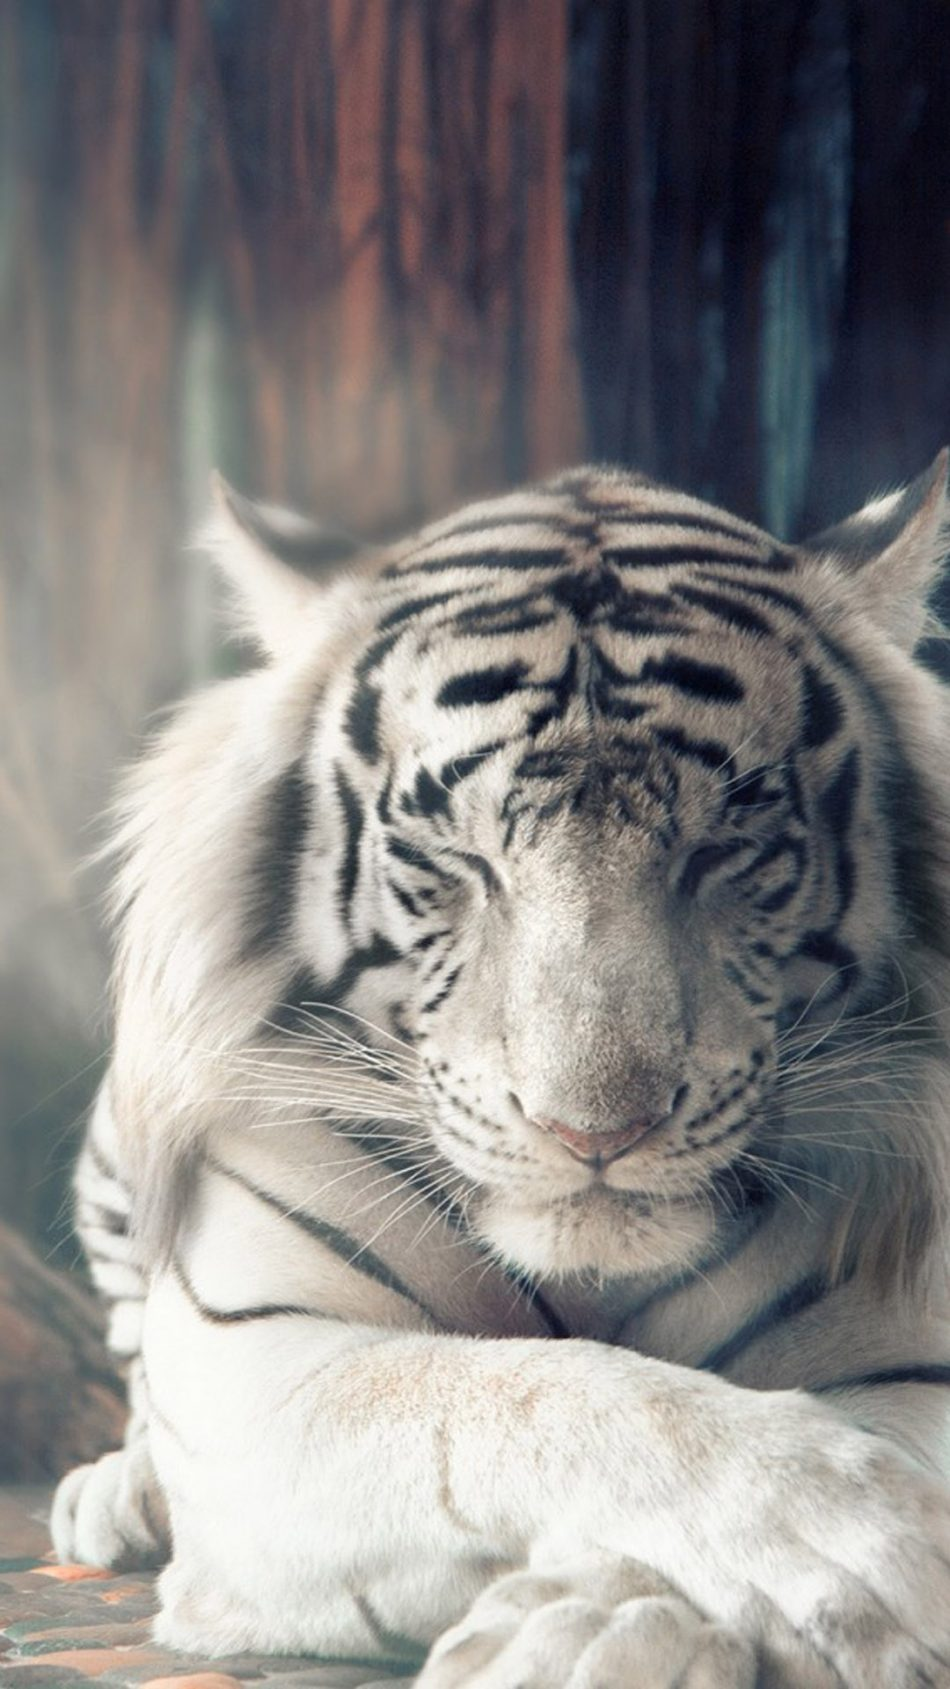 4k Wallpaper Tiger Posted By Sarah Tremblay